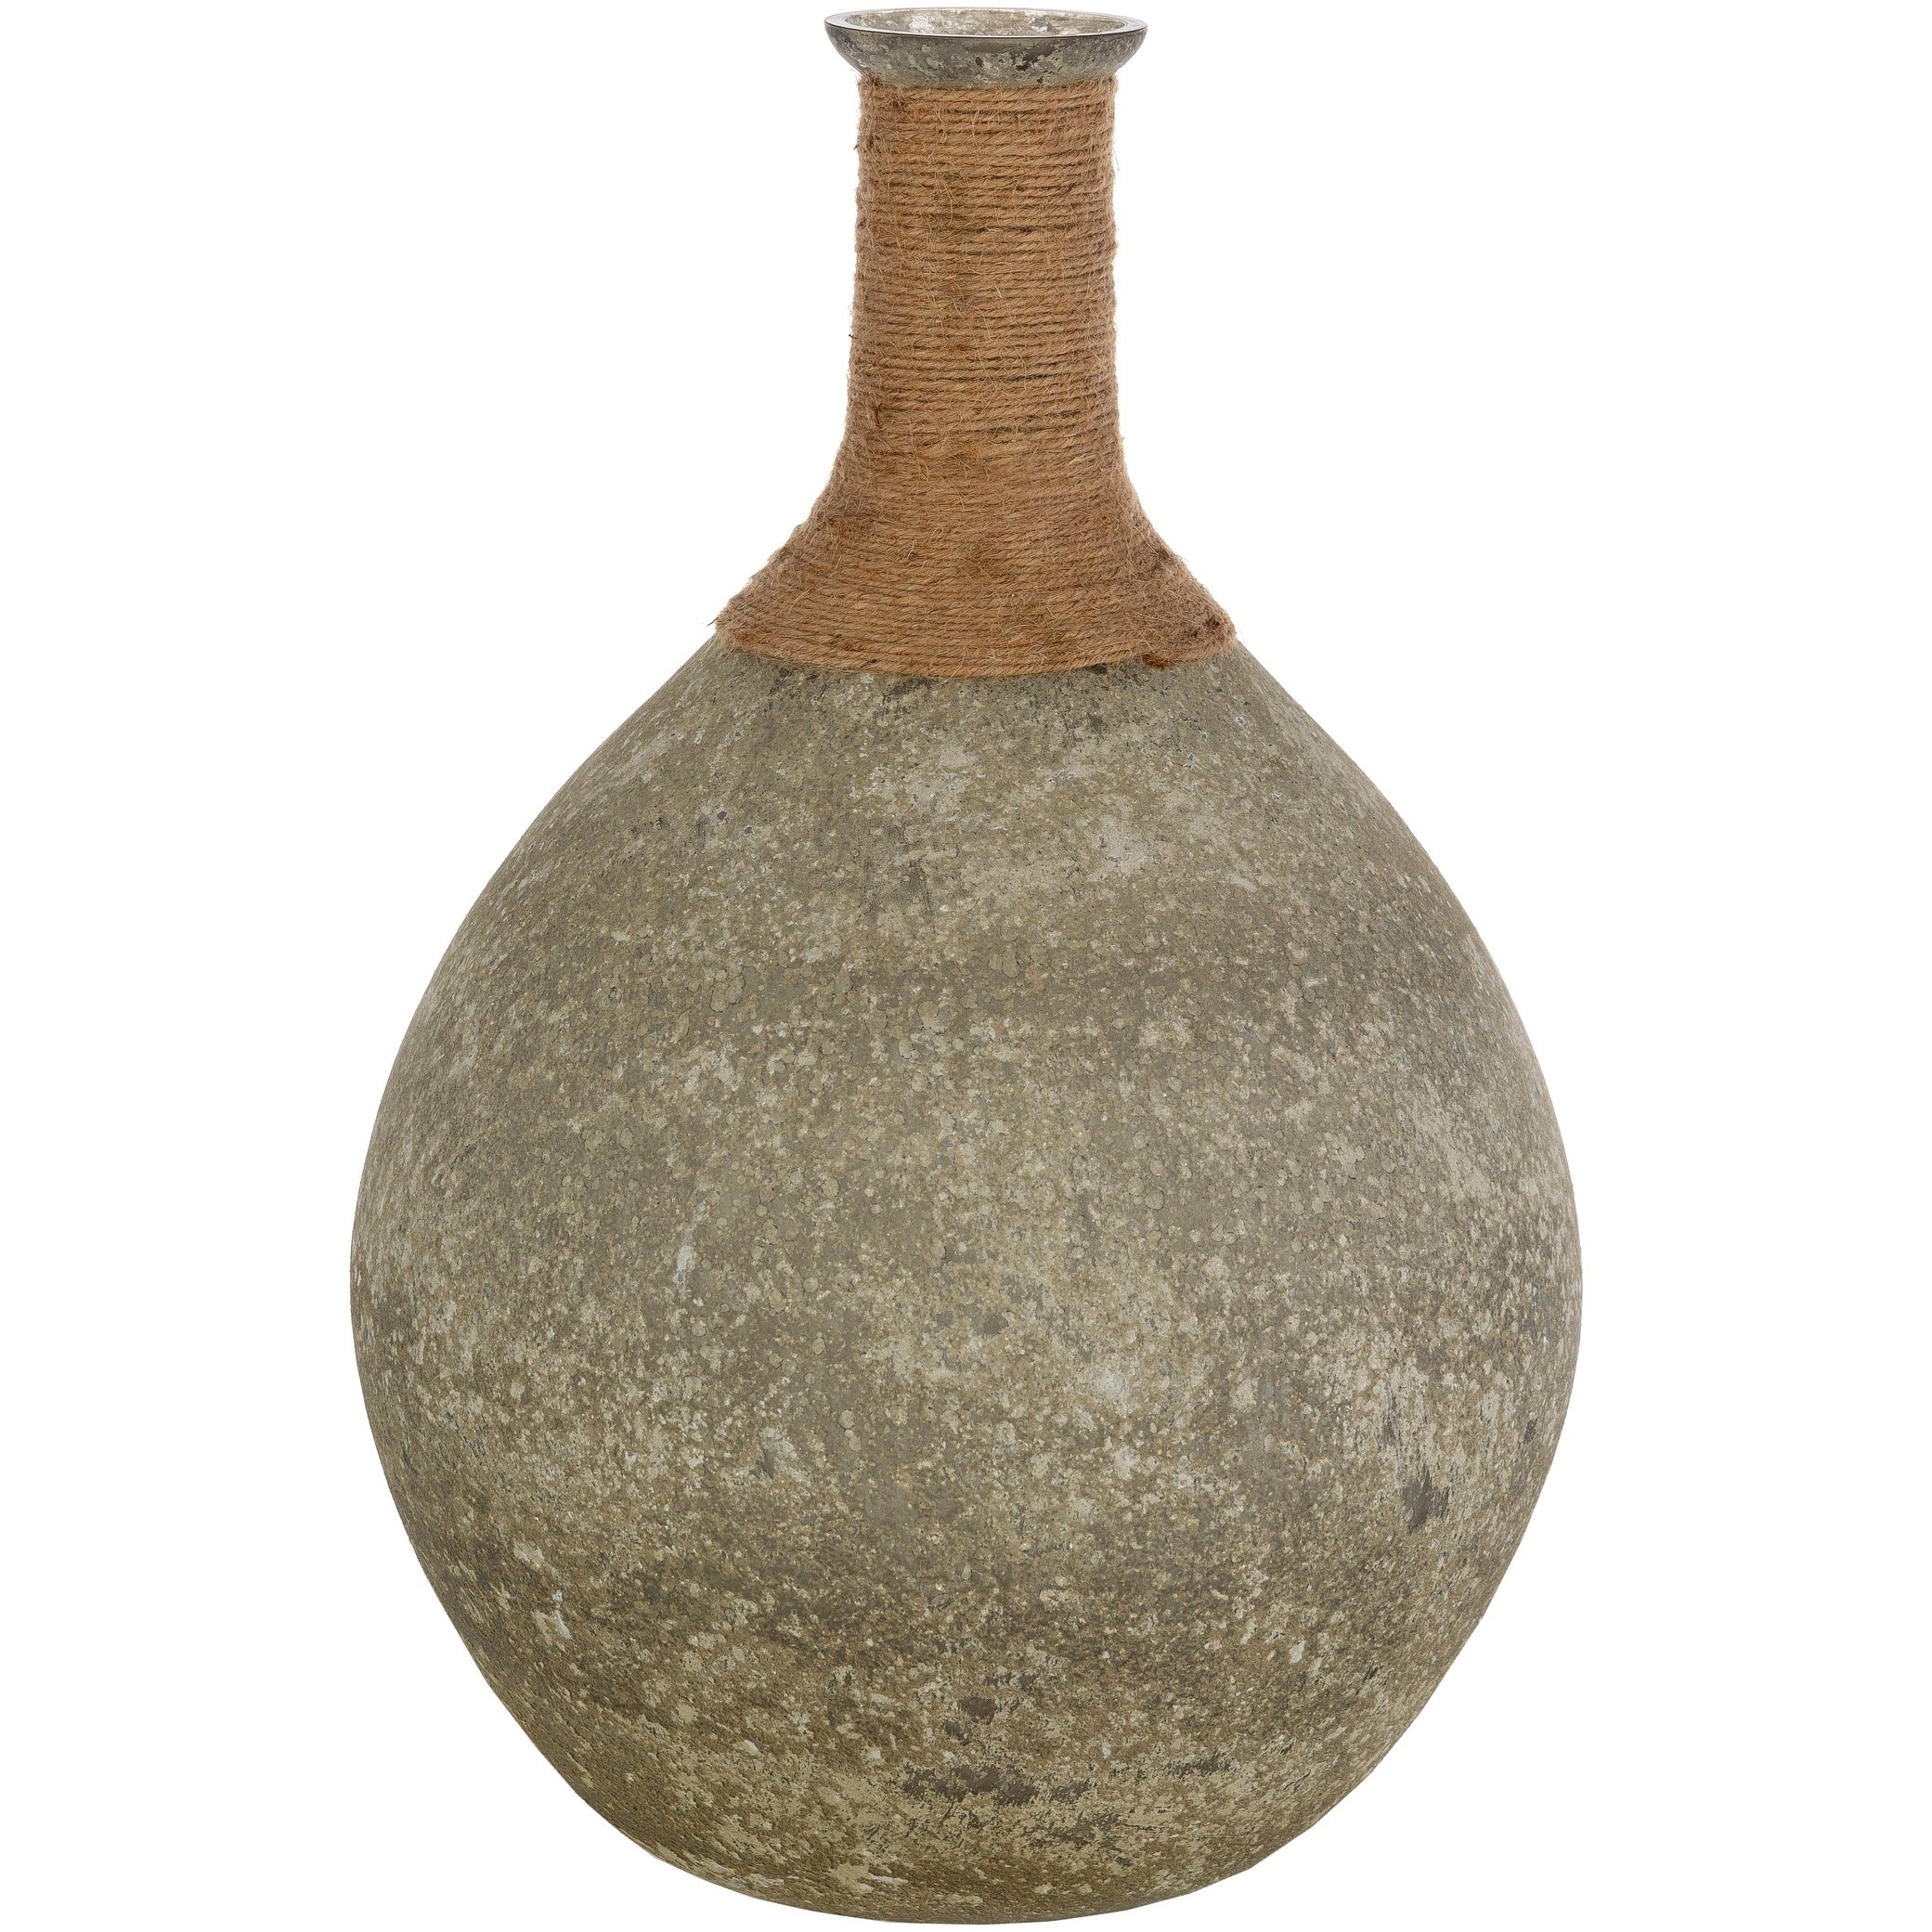 Shop Bousquet Transitional Glass And Jute Bud Shaped Floor Vase On Sale Overstock 29613333